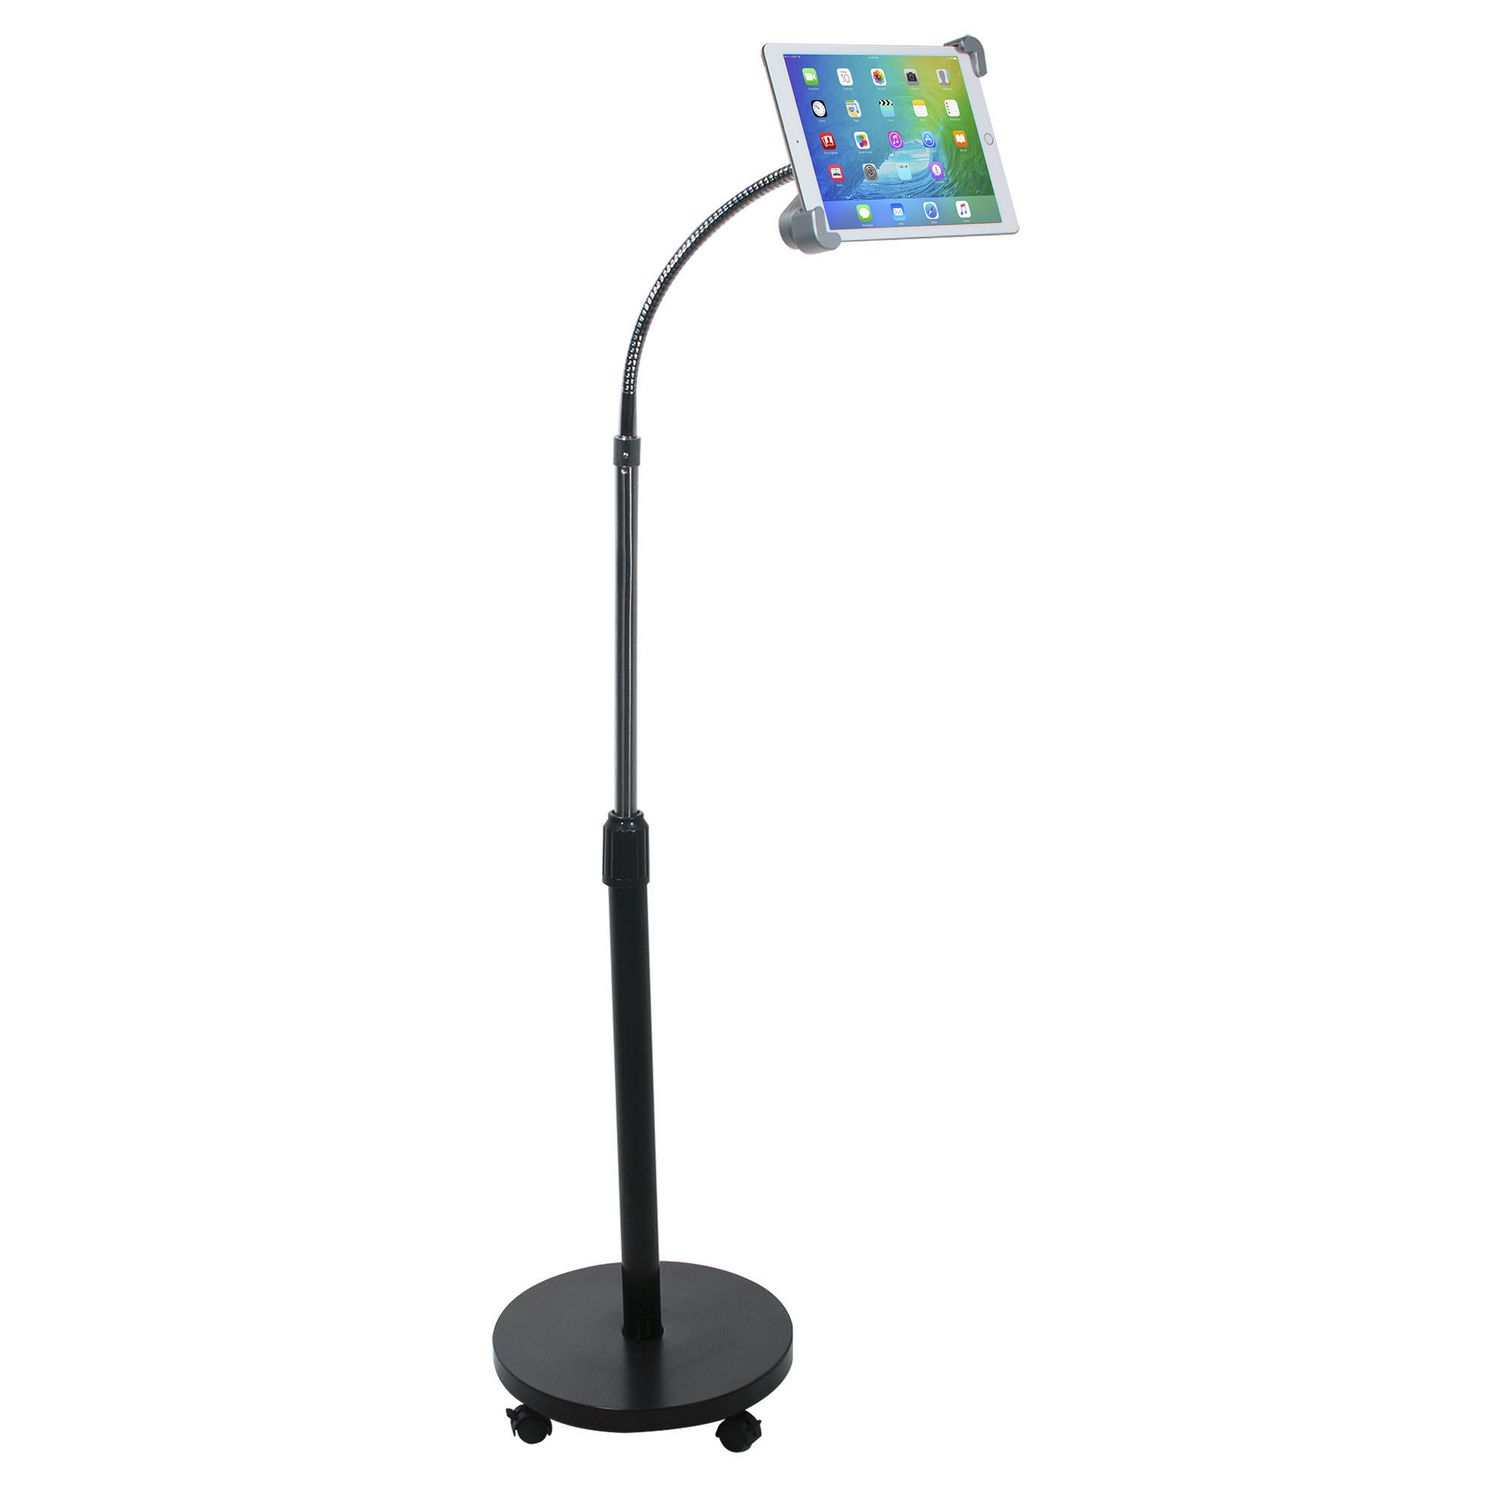 lamp health care floors goose floor com neck personal drive exam dp chrome gooseneck amazon medical